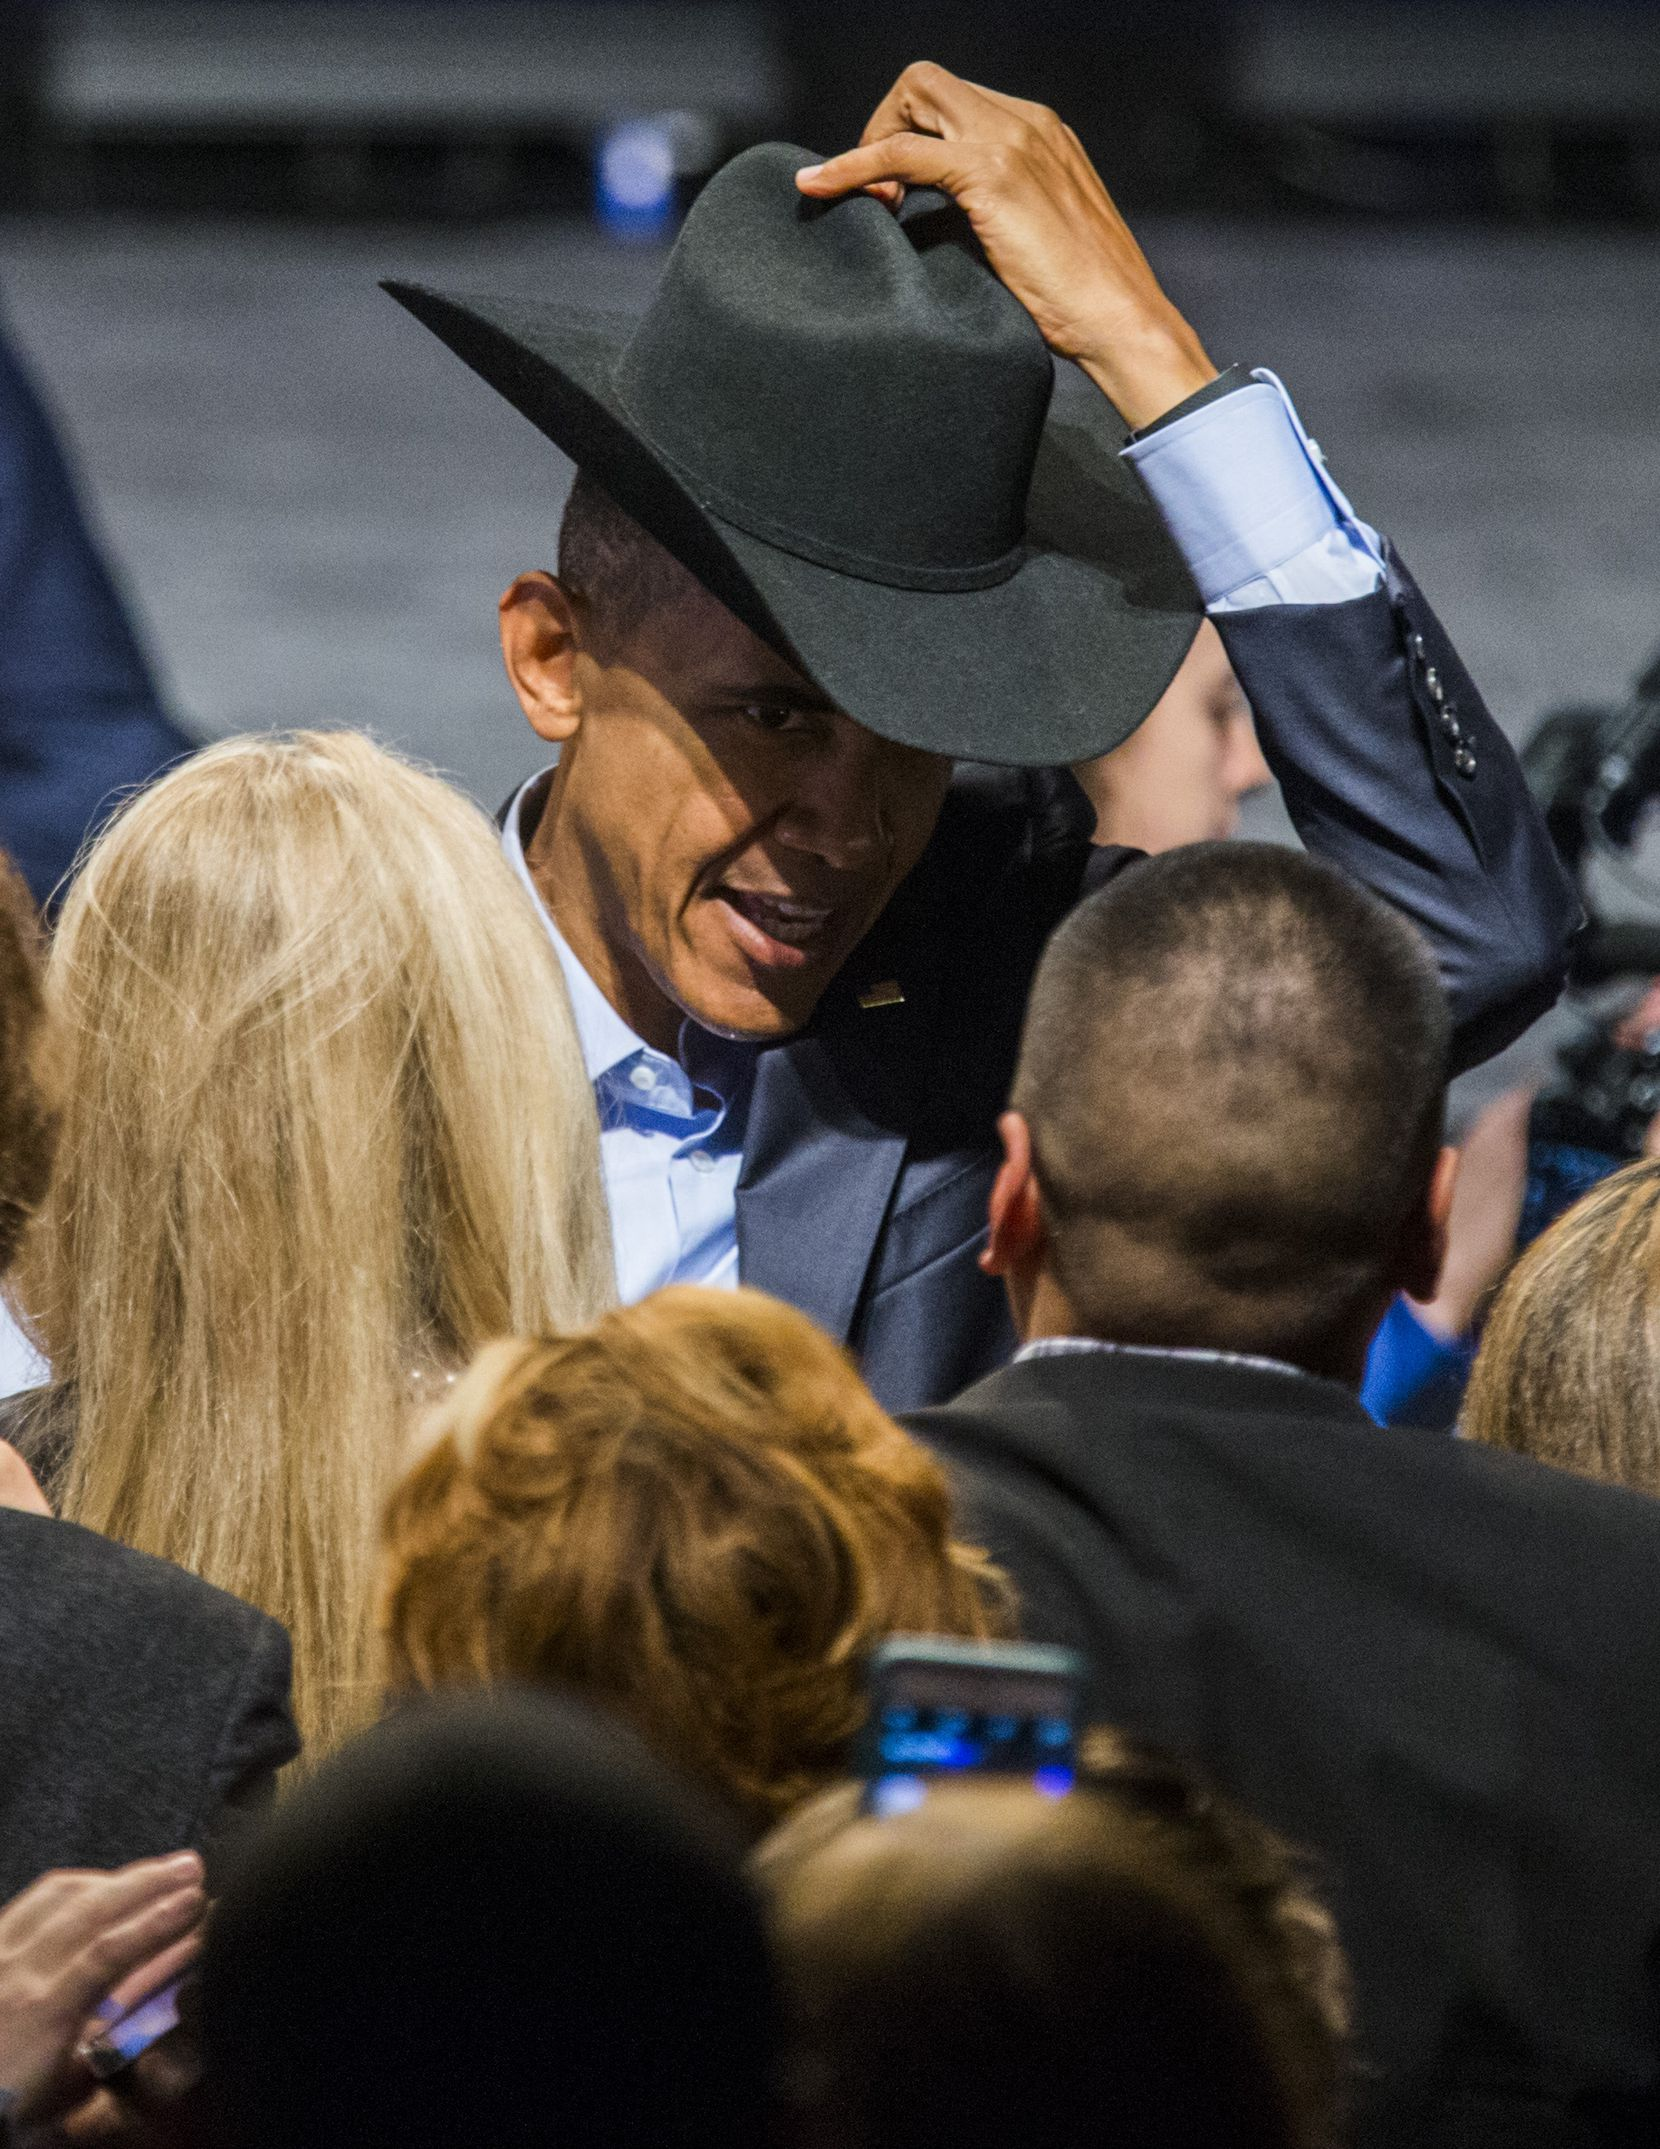 President Barack Obama tries on a cowboy hat from a member of the crowd after speaking at a Democratic National Committee event at Gilley's Club Dallas on March 12, 2016, in Dallas.